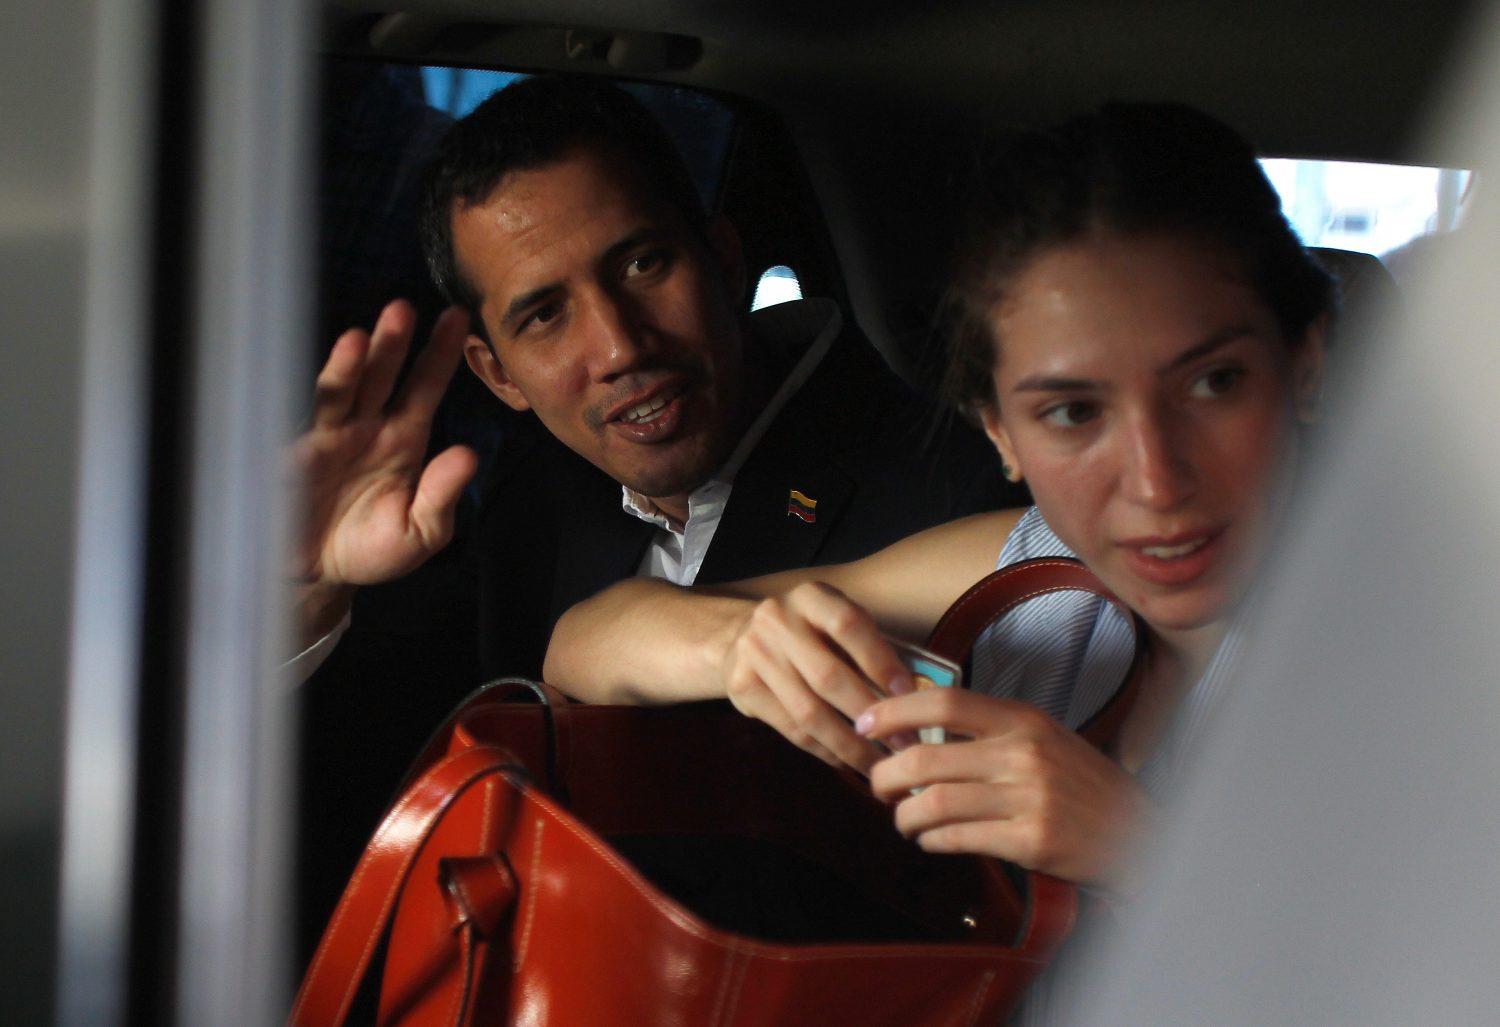 Venezuelan opposition leader Juan Guaido, who many nations have recognized as the country's rightful interim ruler, waves next to his wife Fabiana Rosales while leaving a hotel in Salinas, Ecuador March 3, 2019. REUTERS/Daniel Tapia